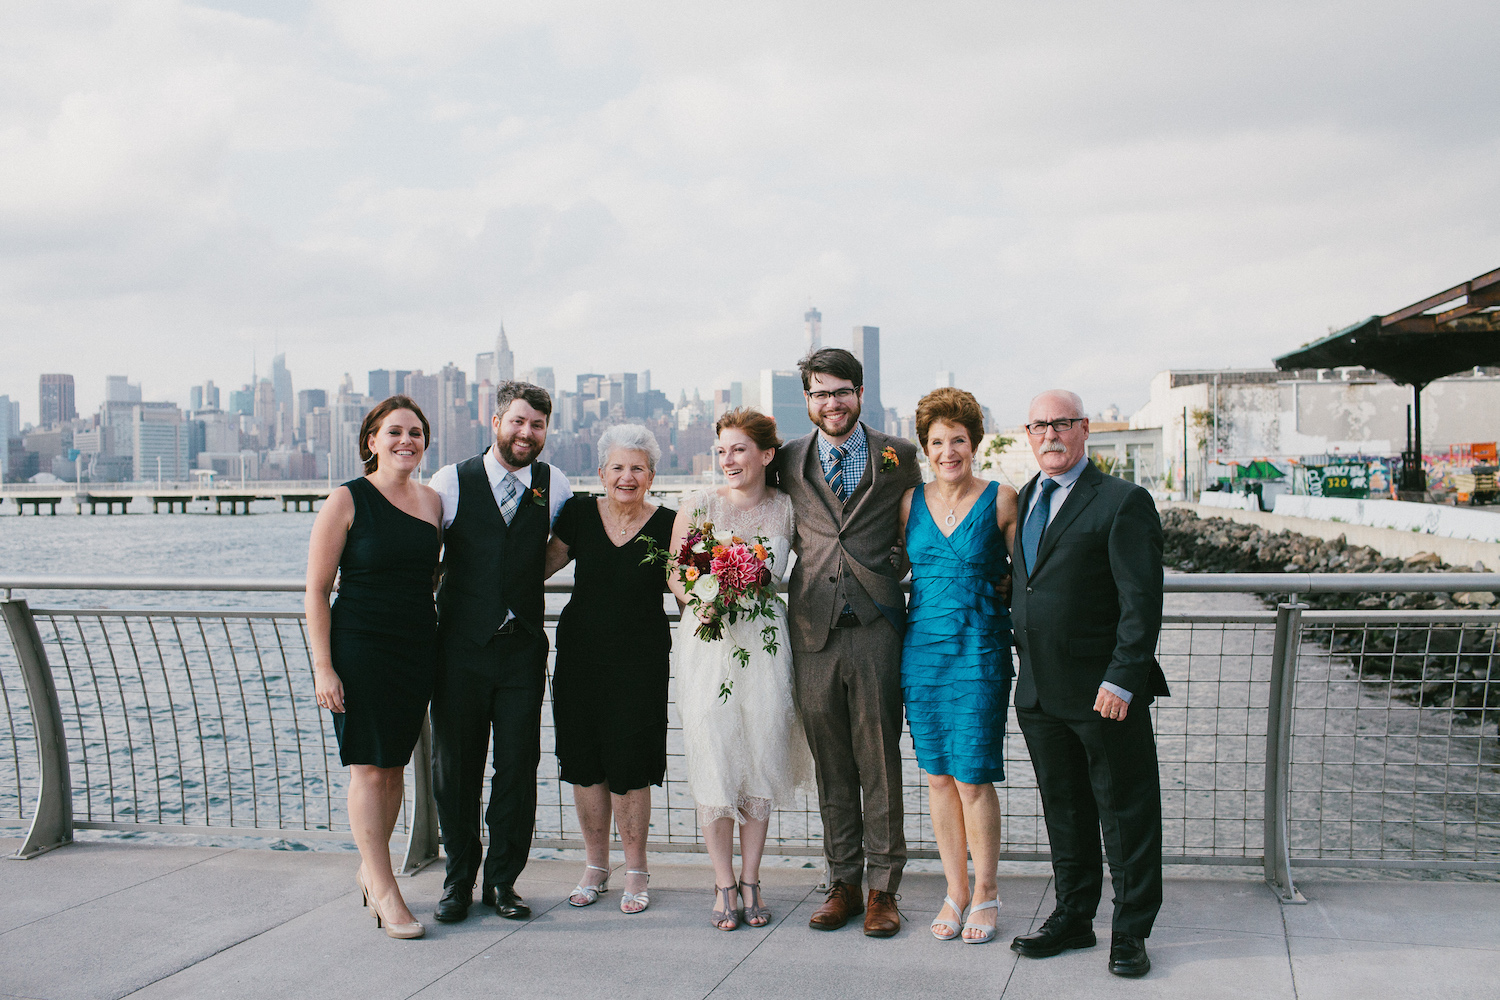 Full Aperture Floral & Corey Torpie Photography  - Brooklyn Wedding - 32.jpeg